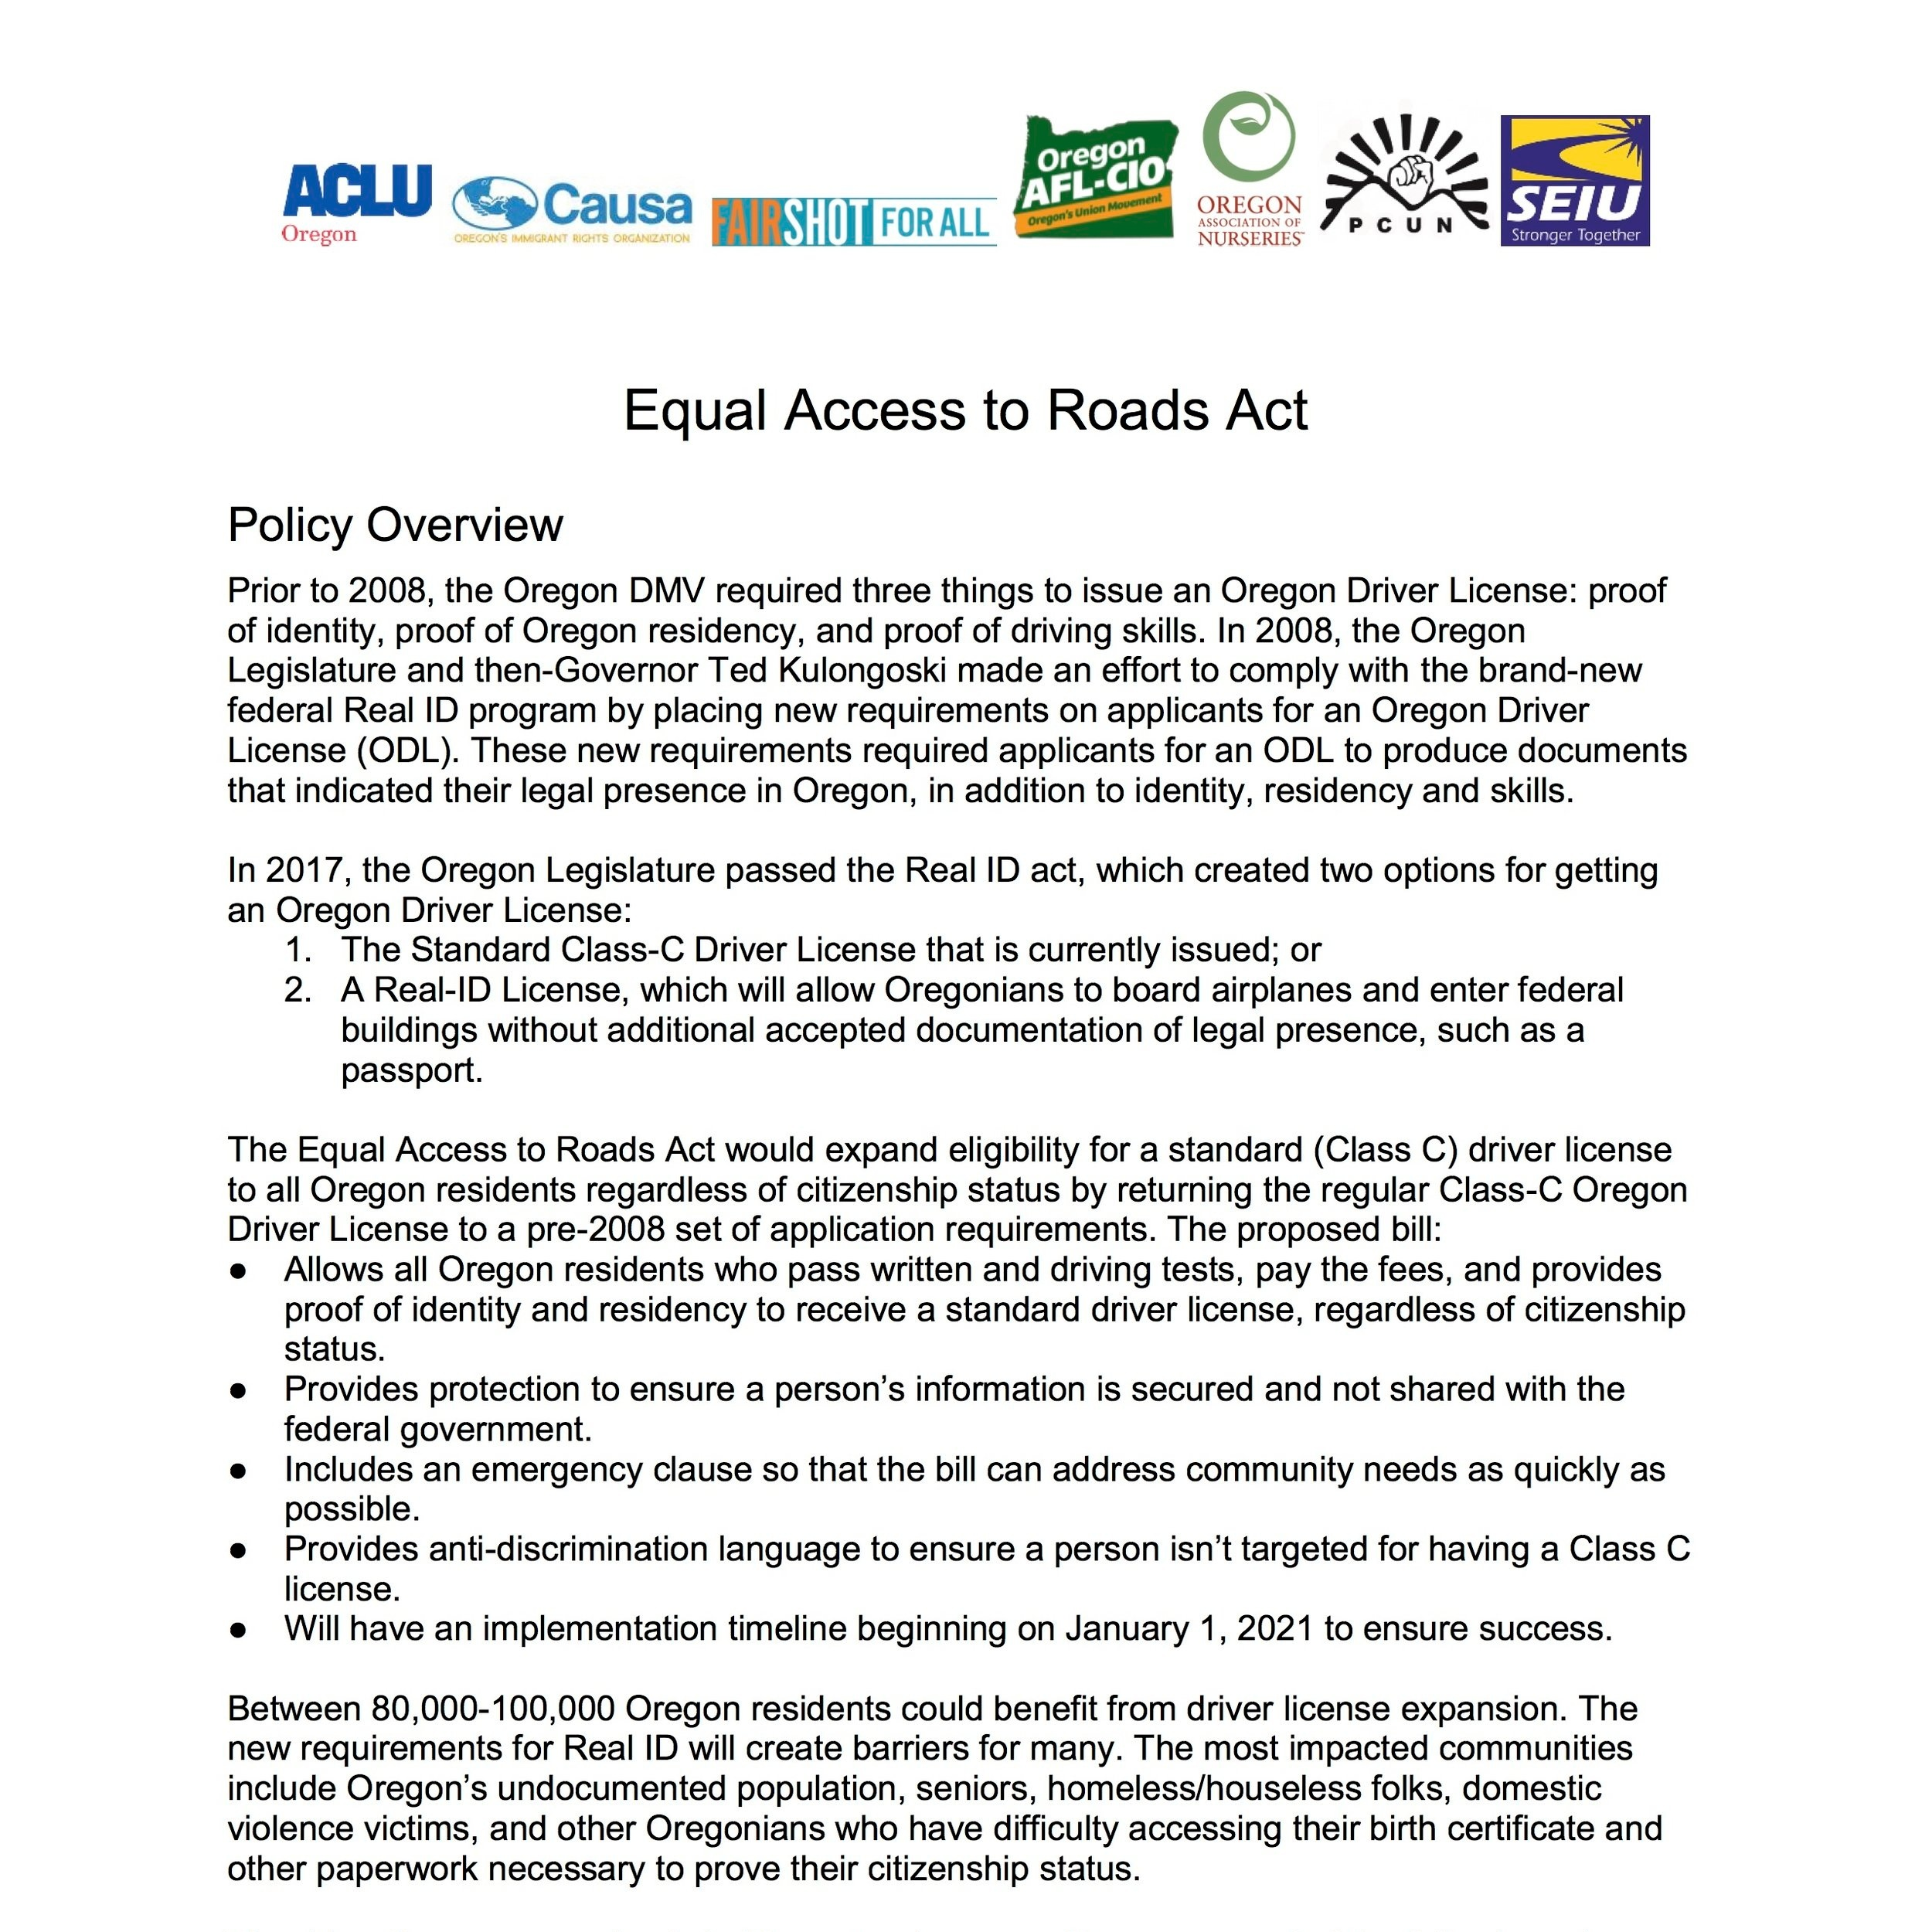 HB2015 Equal Access to Roads